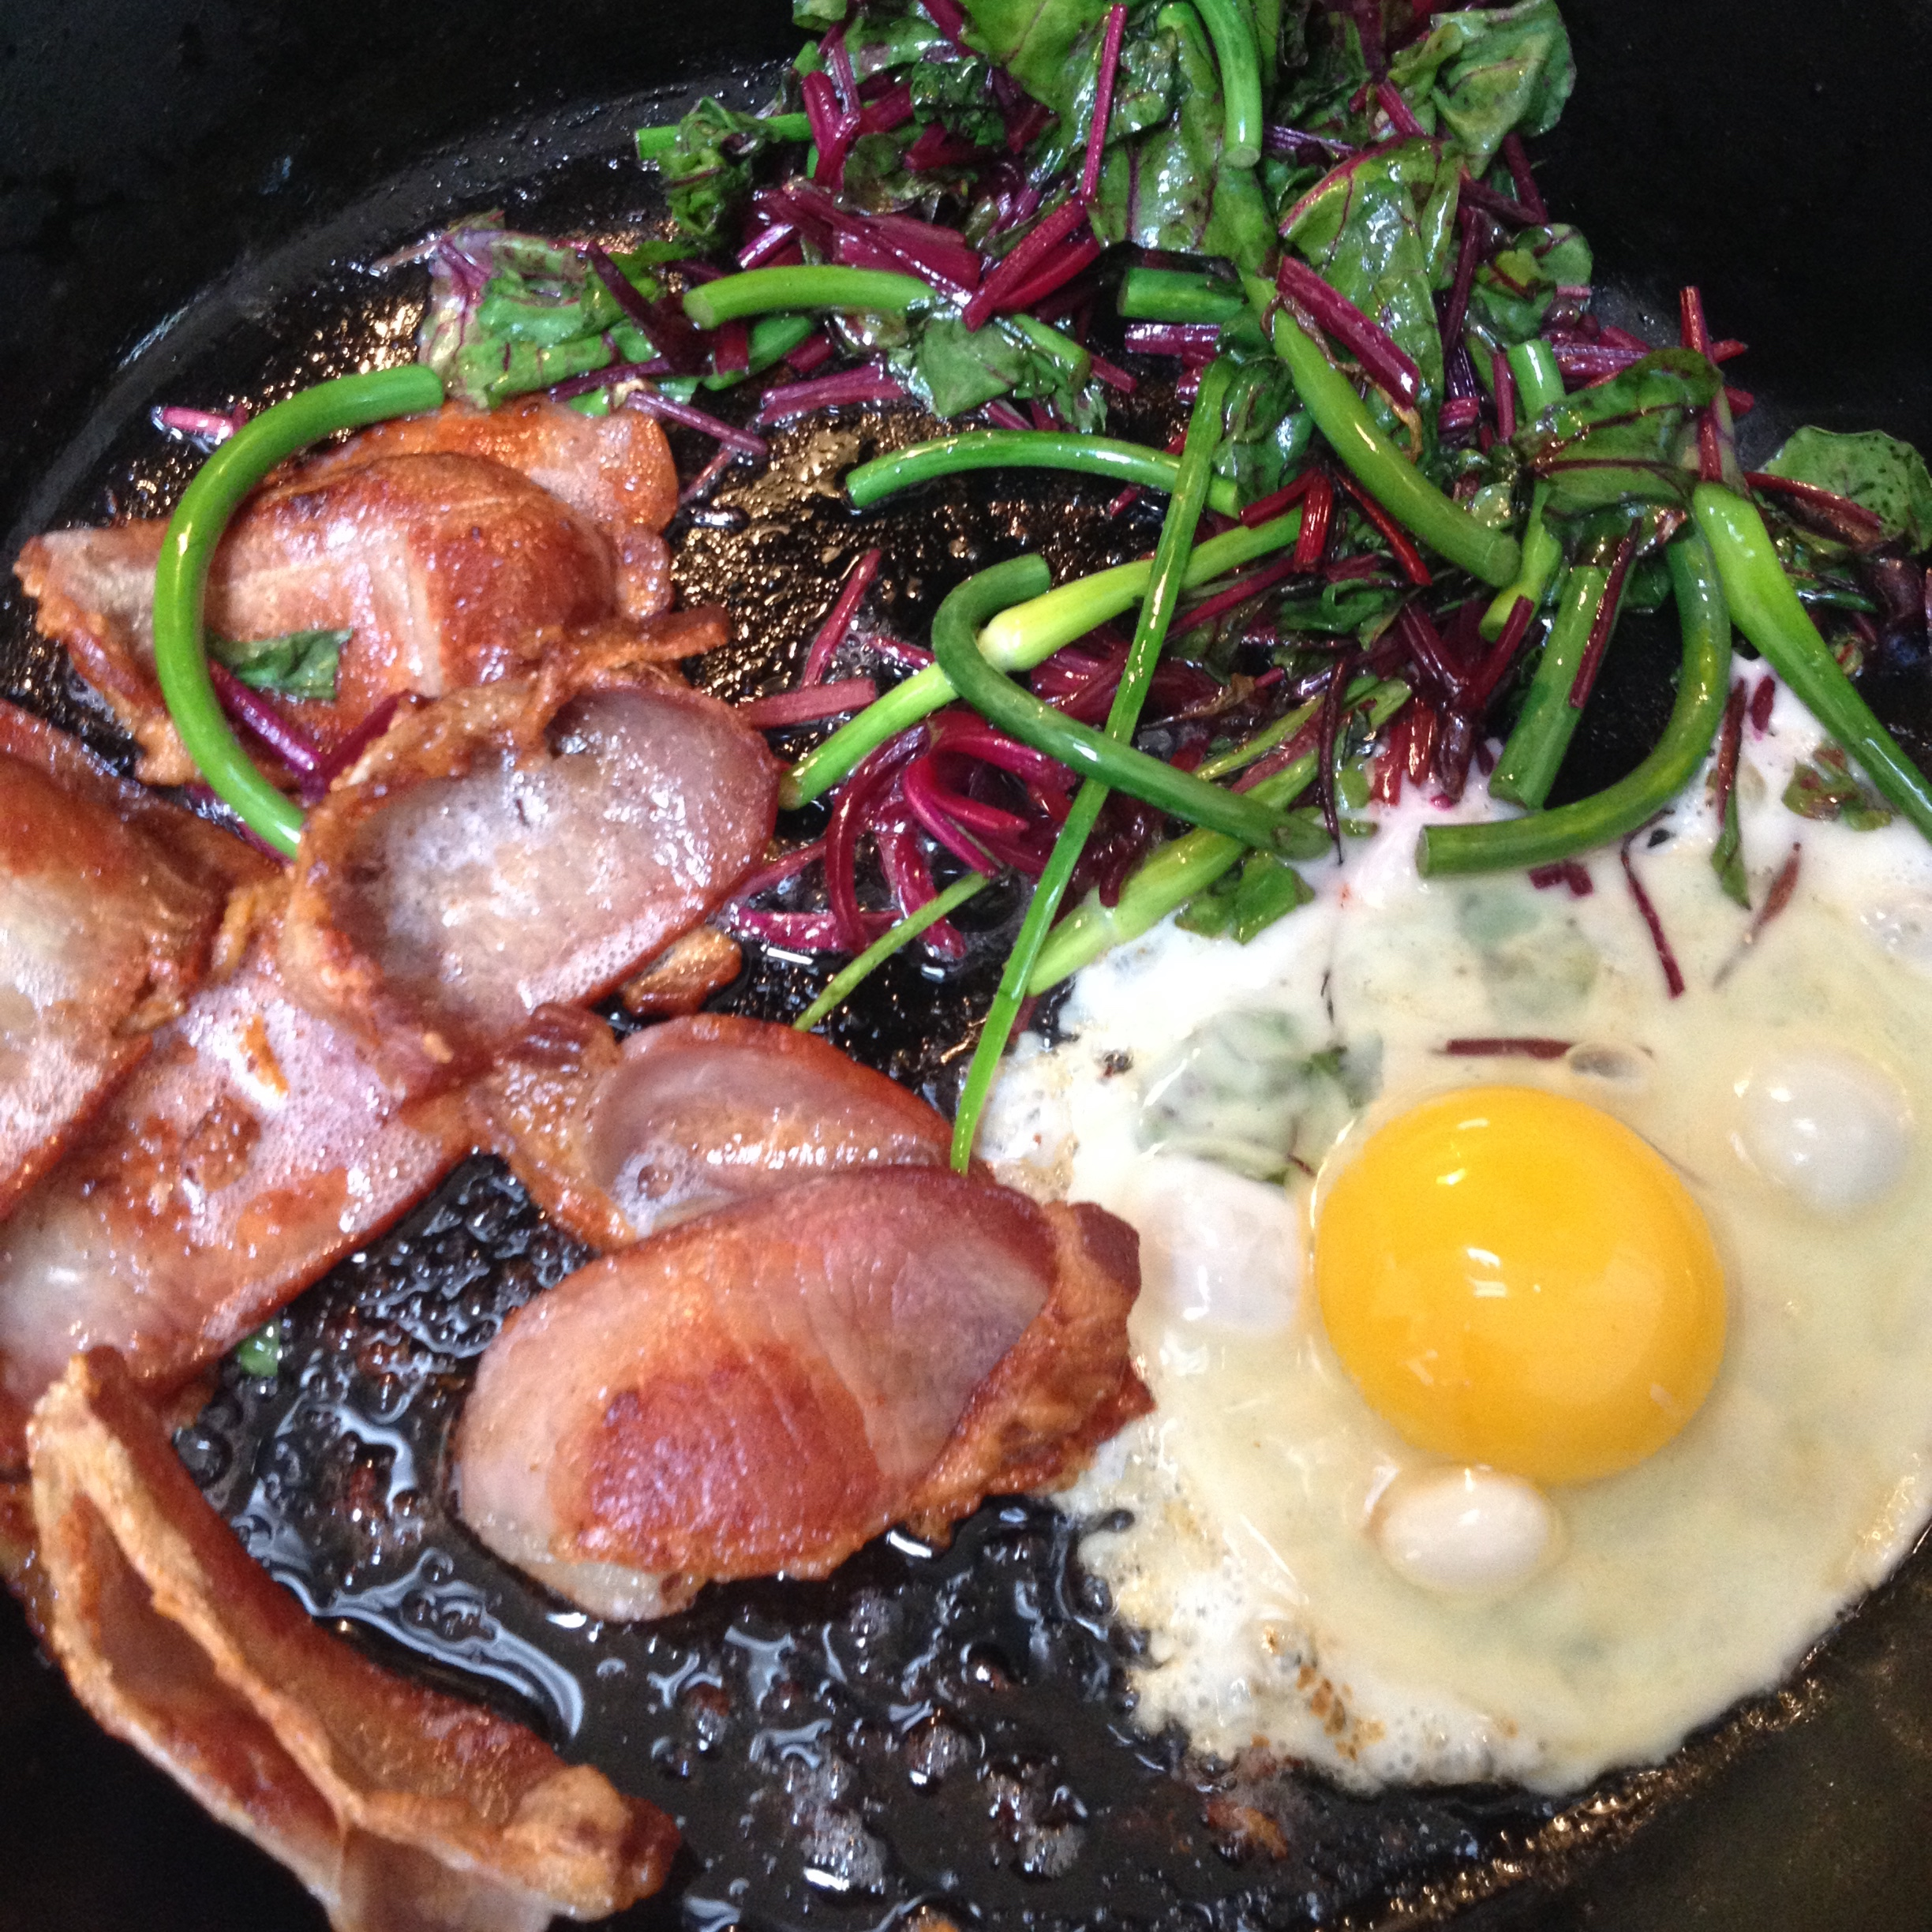 I treated myself with bacon, eggs, beet greens, and garlic scapes